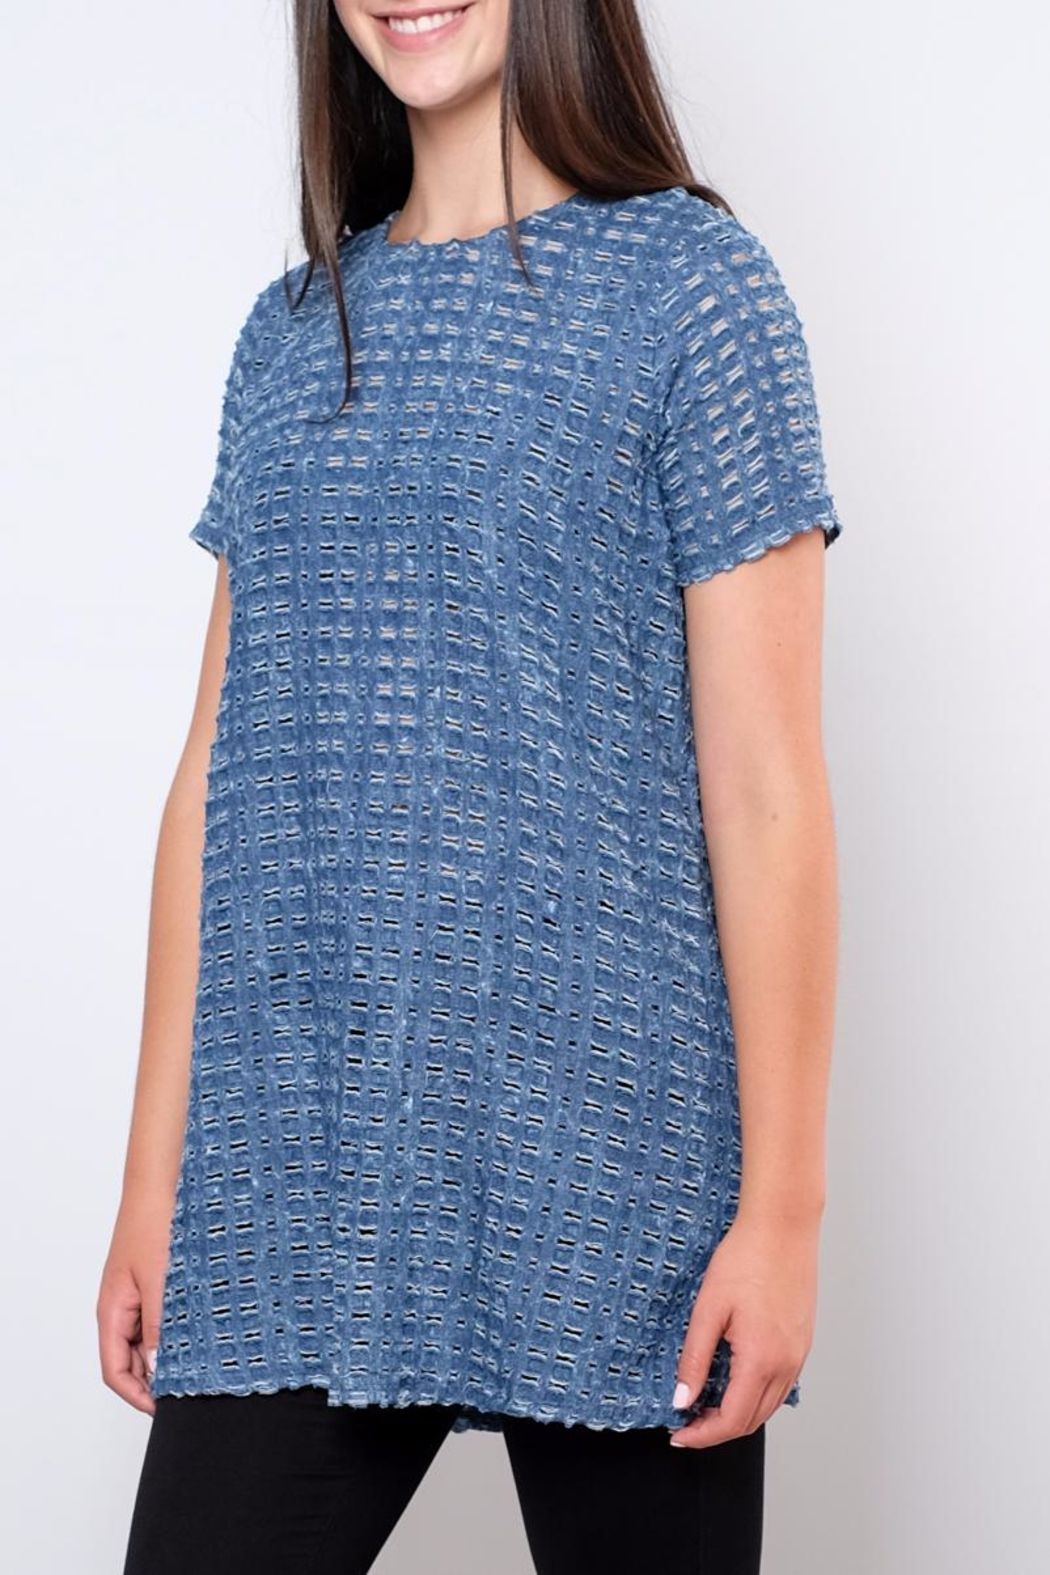 rokoko Perforated Denim Tunic Top - Side Cropped Image